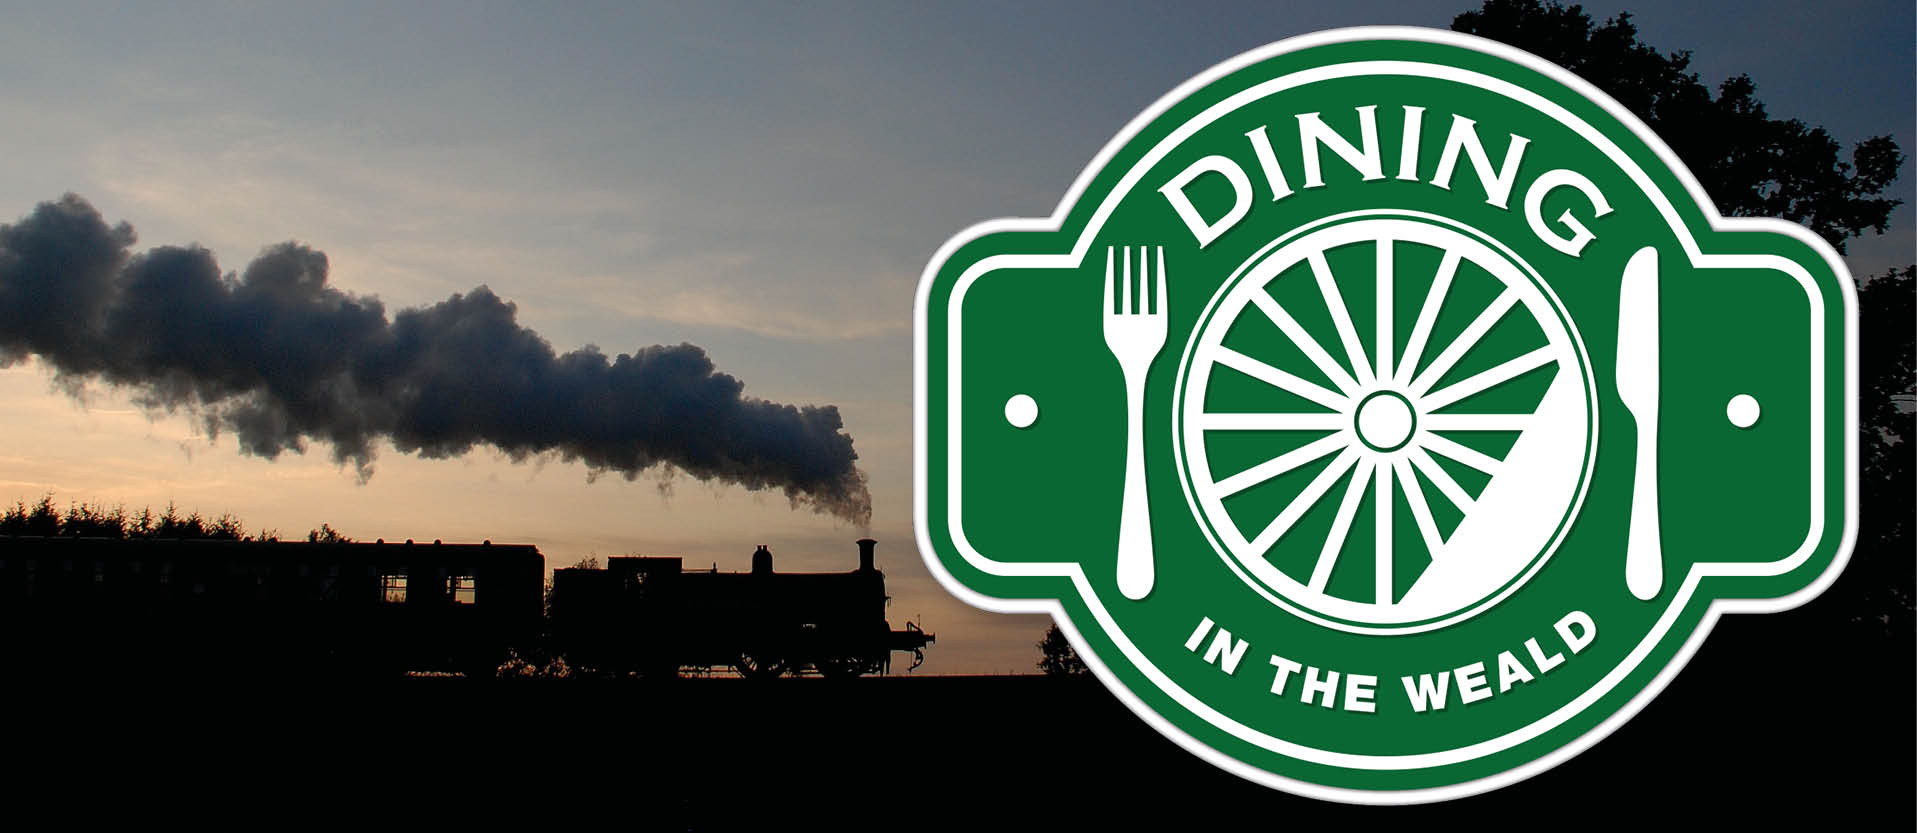 Dining Trains -